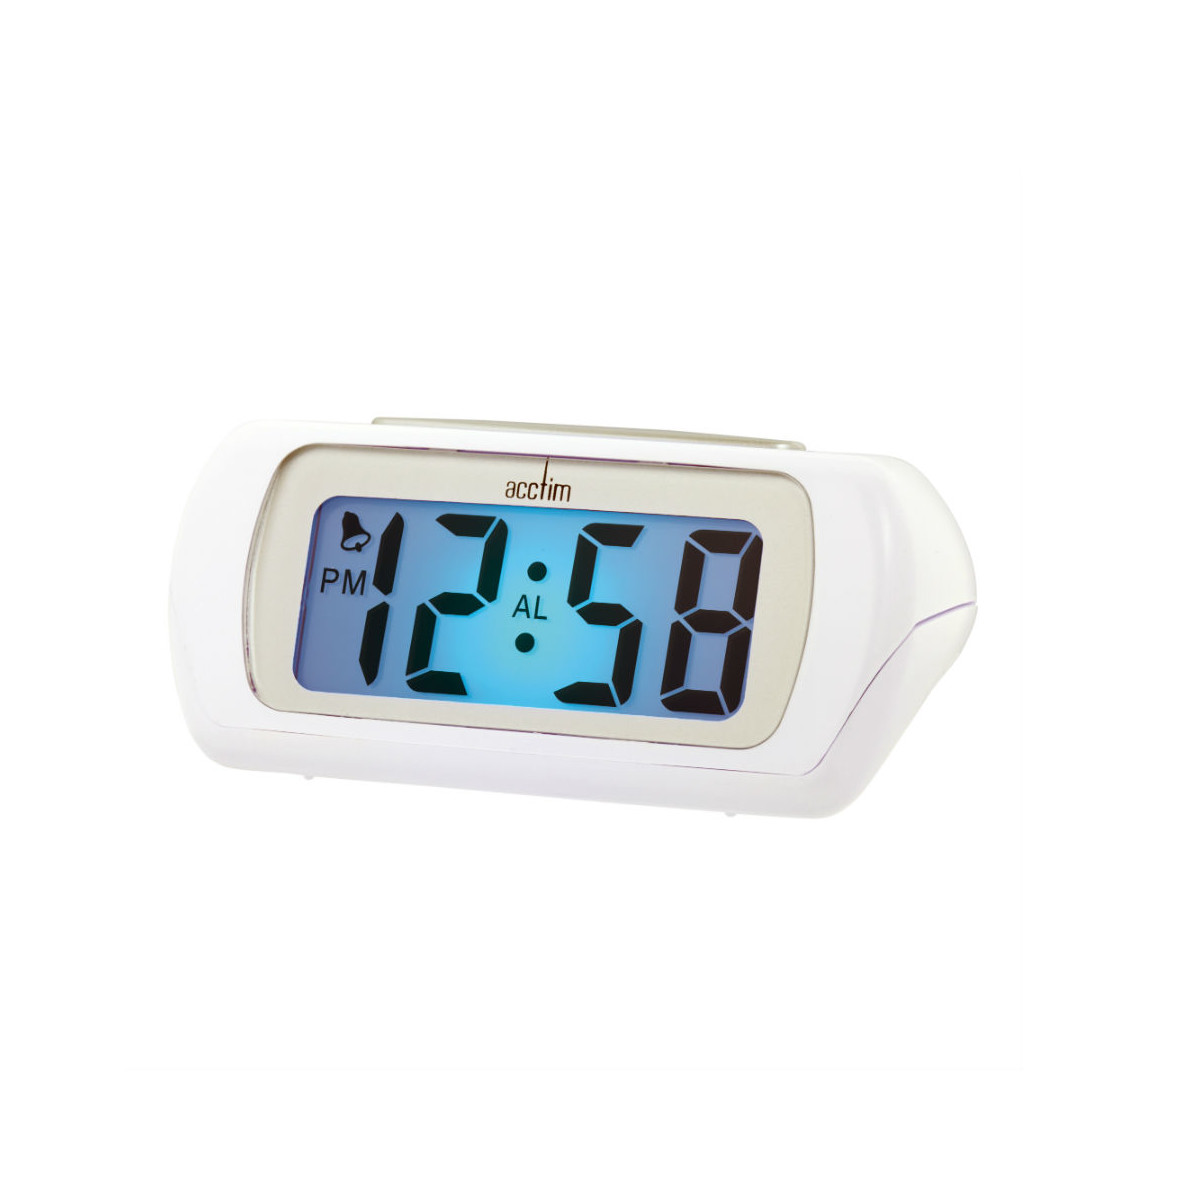 Acctim Auric LCD Alarm Clock White